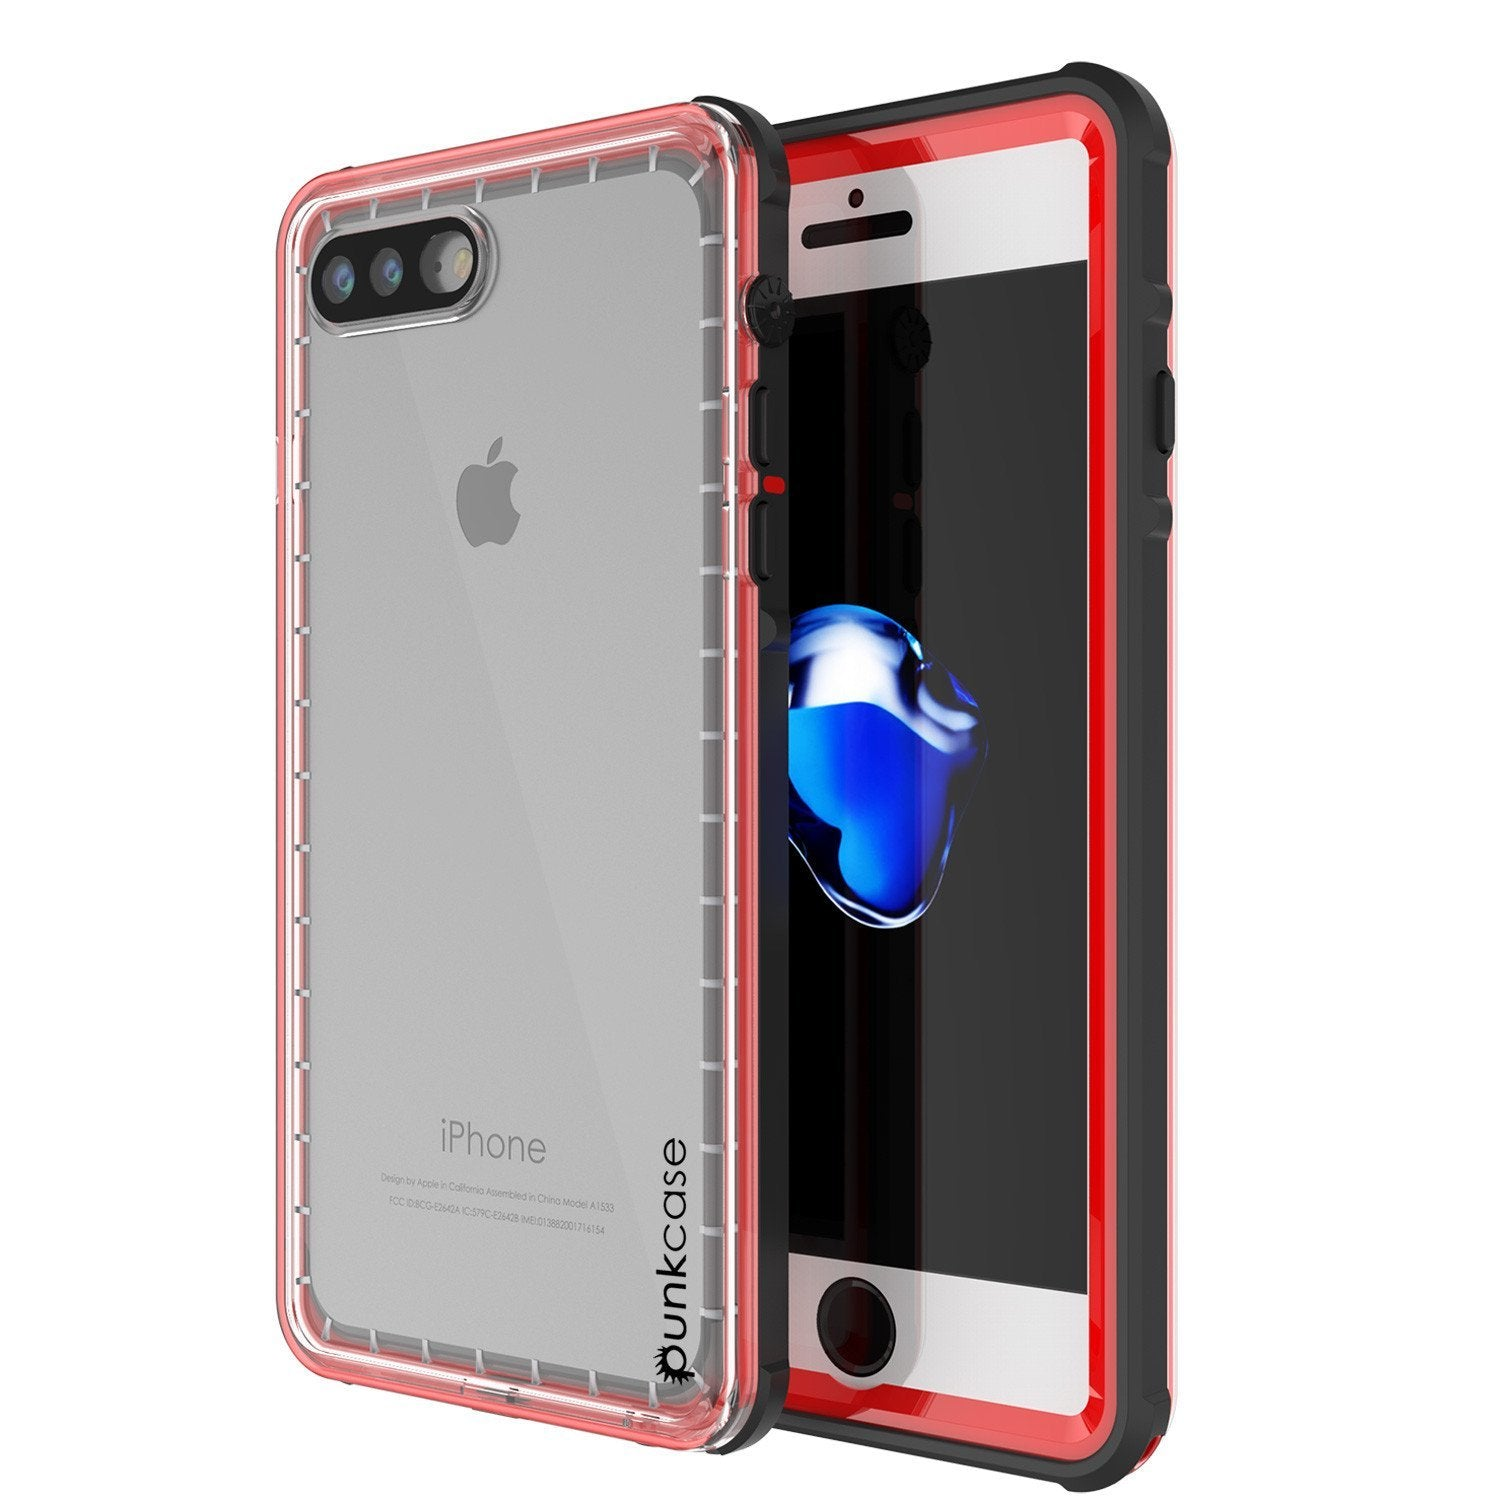 iPhone 8+ Plus Waterproof Case, PUNKcase CRYSTAL Red W/ Attached Screen Protector  | Warranty